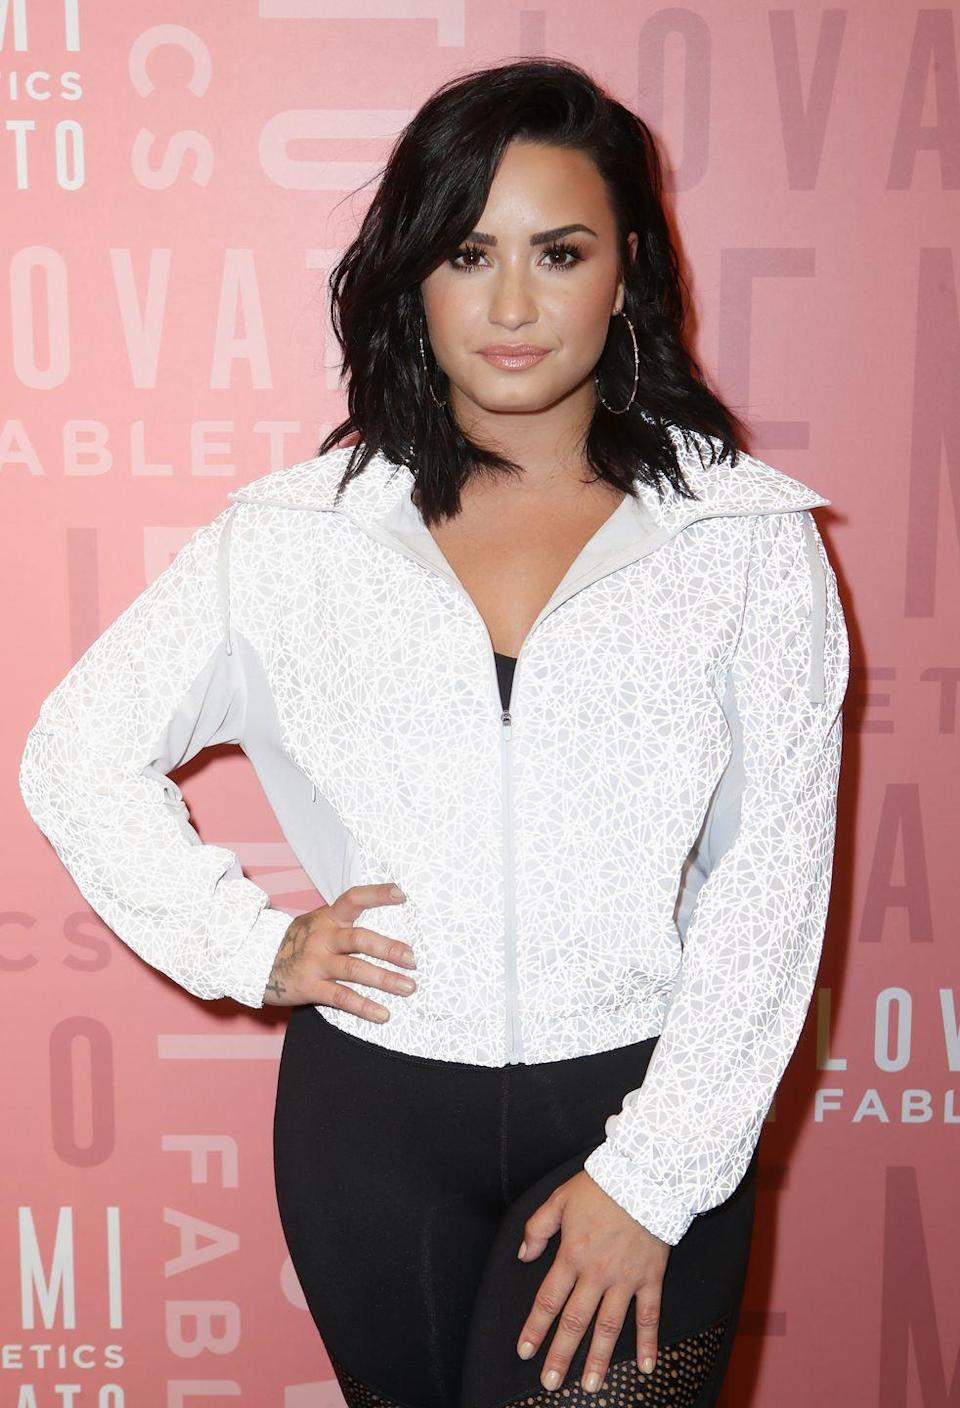 """<p><strong>Demi Lovato</strong>'s jet black cut is just about as dark as you can go. And like its polar opposite platinum blonde, it's almost always universally flattering. Ask your colorist for """"dark brunette"""" instead of """"black"""" hair to avoid a cartoonish hue.</p>"""